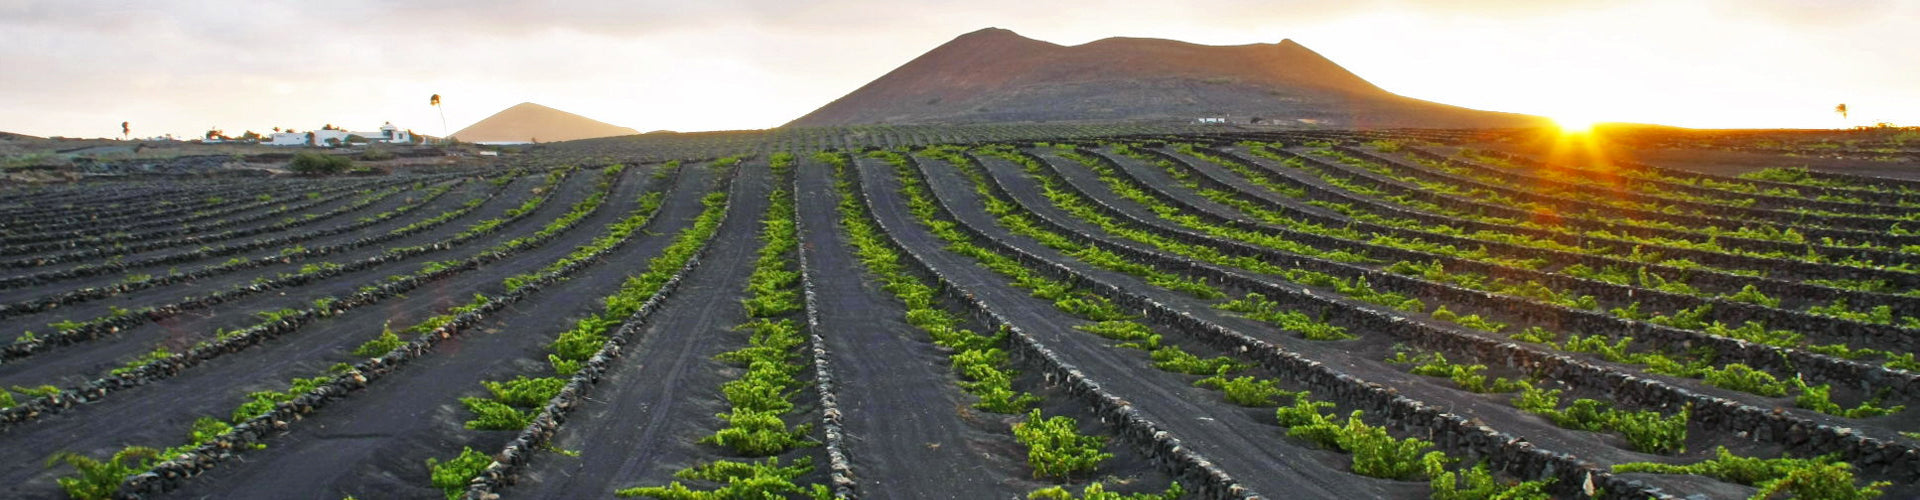 Bodegas El Grifo Vineyards in Lanzarote, Spain